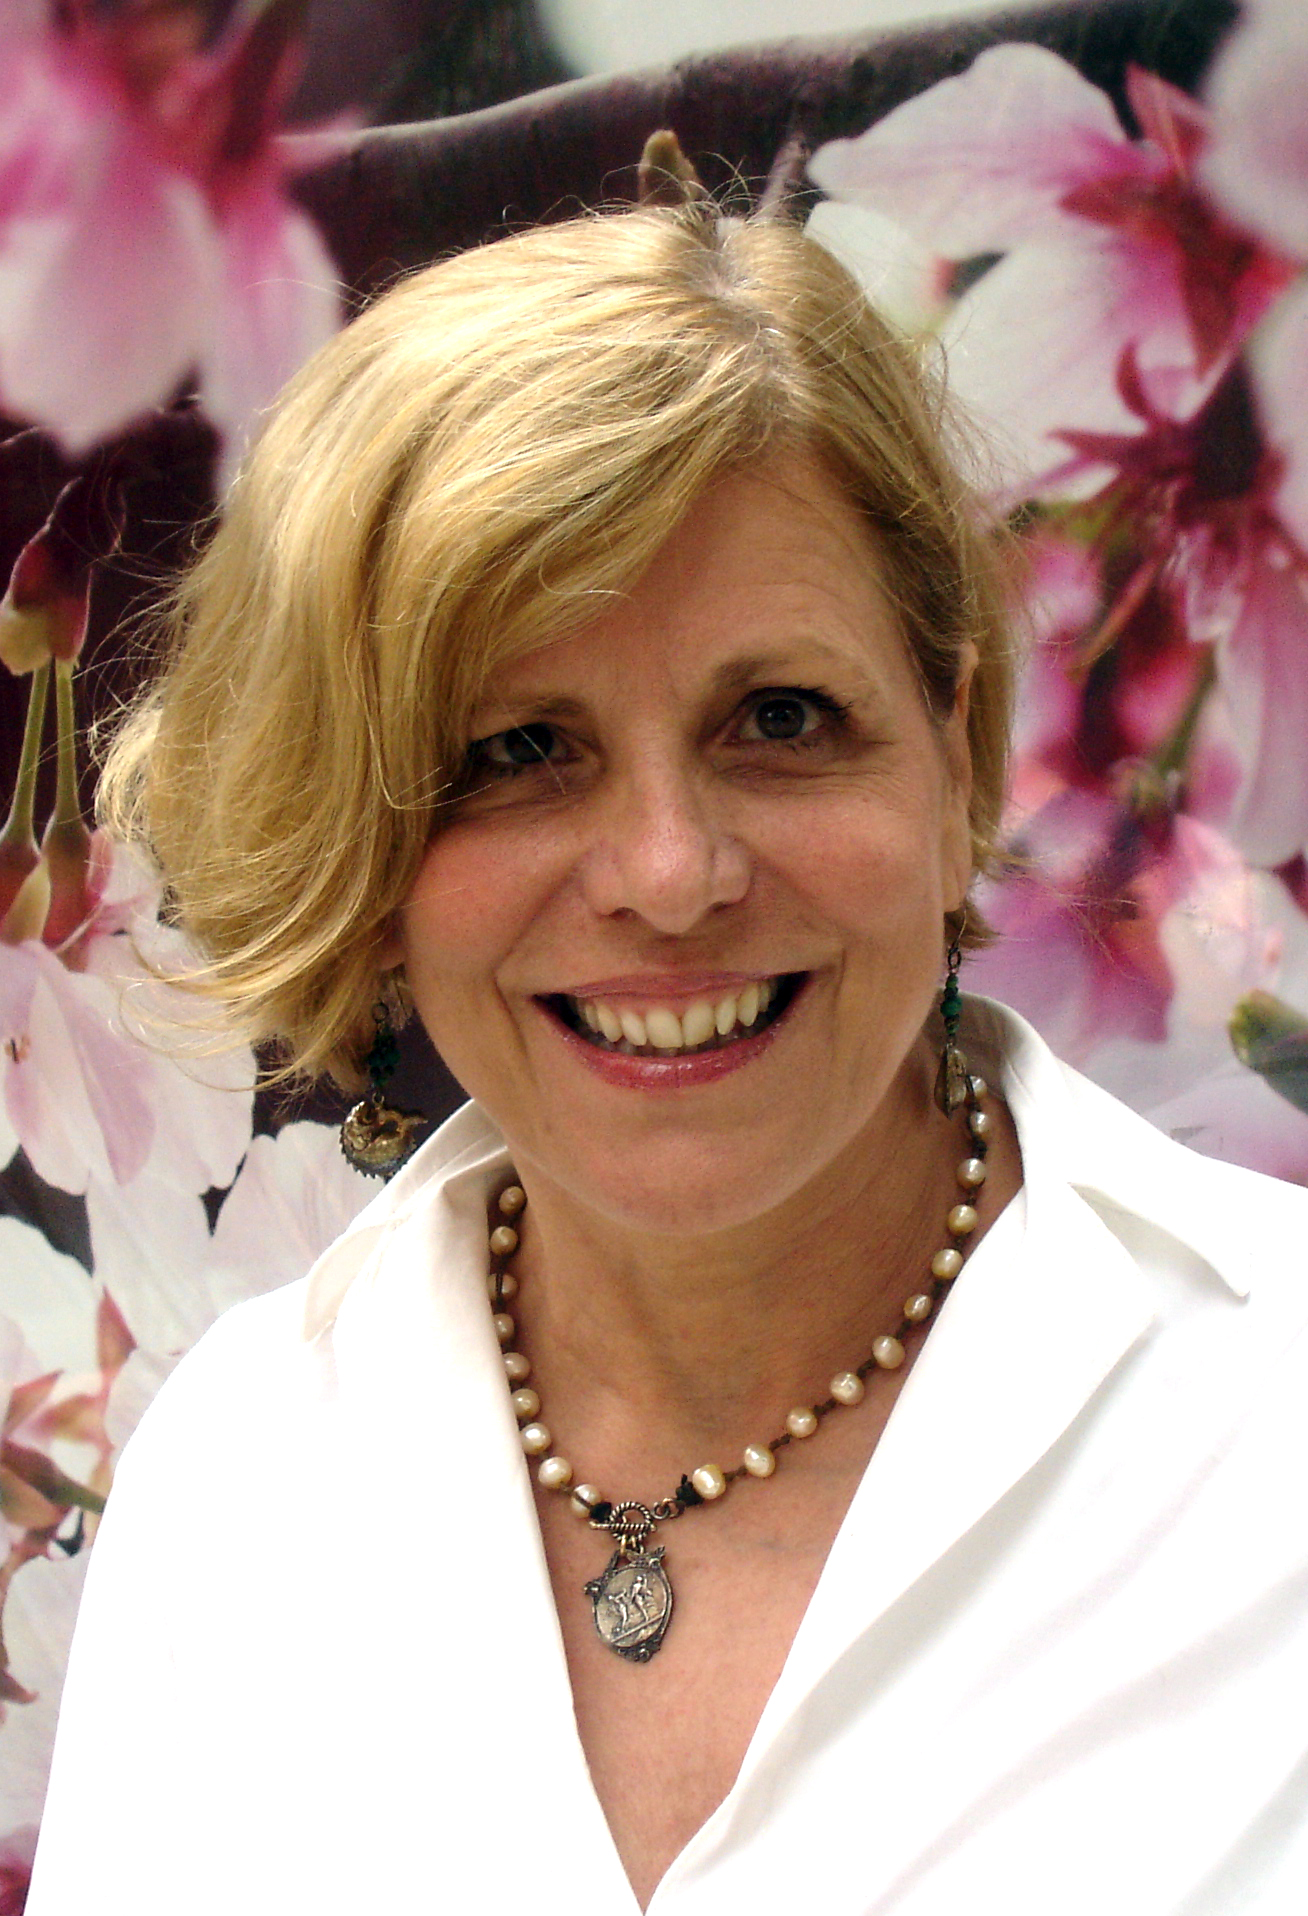 Sally Champagne, Executive Director of Beacon Star Educational Consulting, served as a Senior Admissions Officer at Harvard University for 21 years